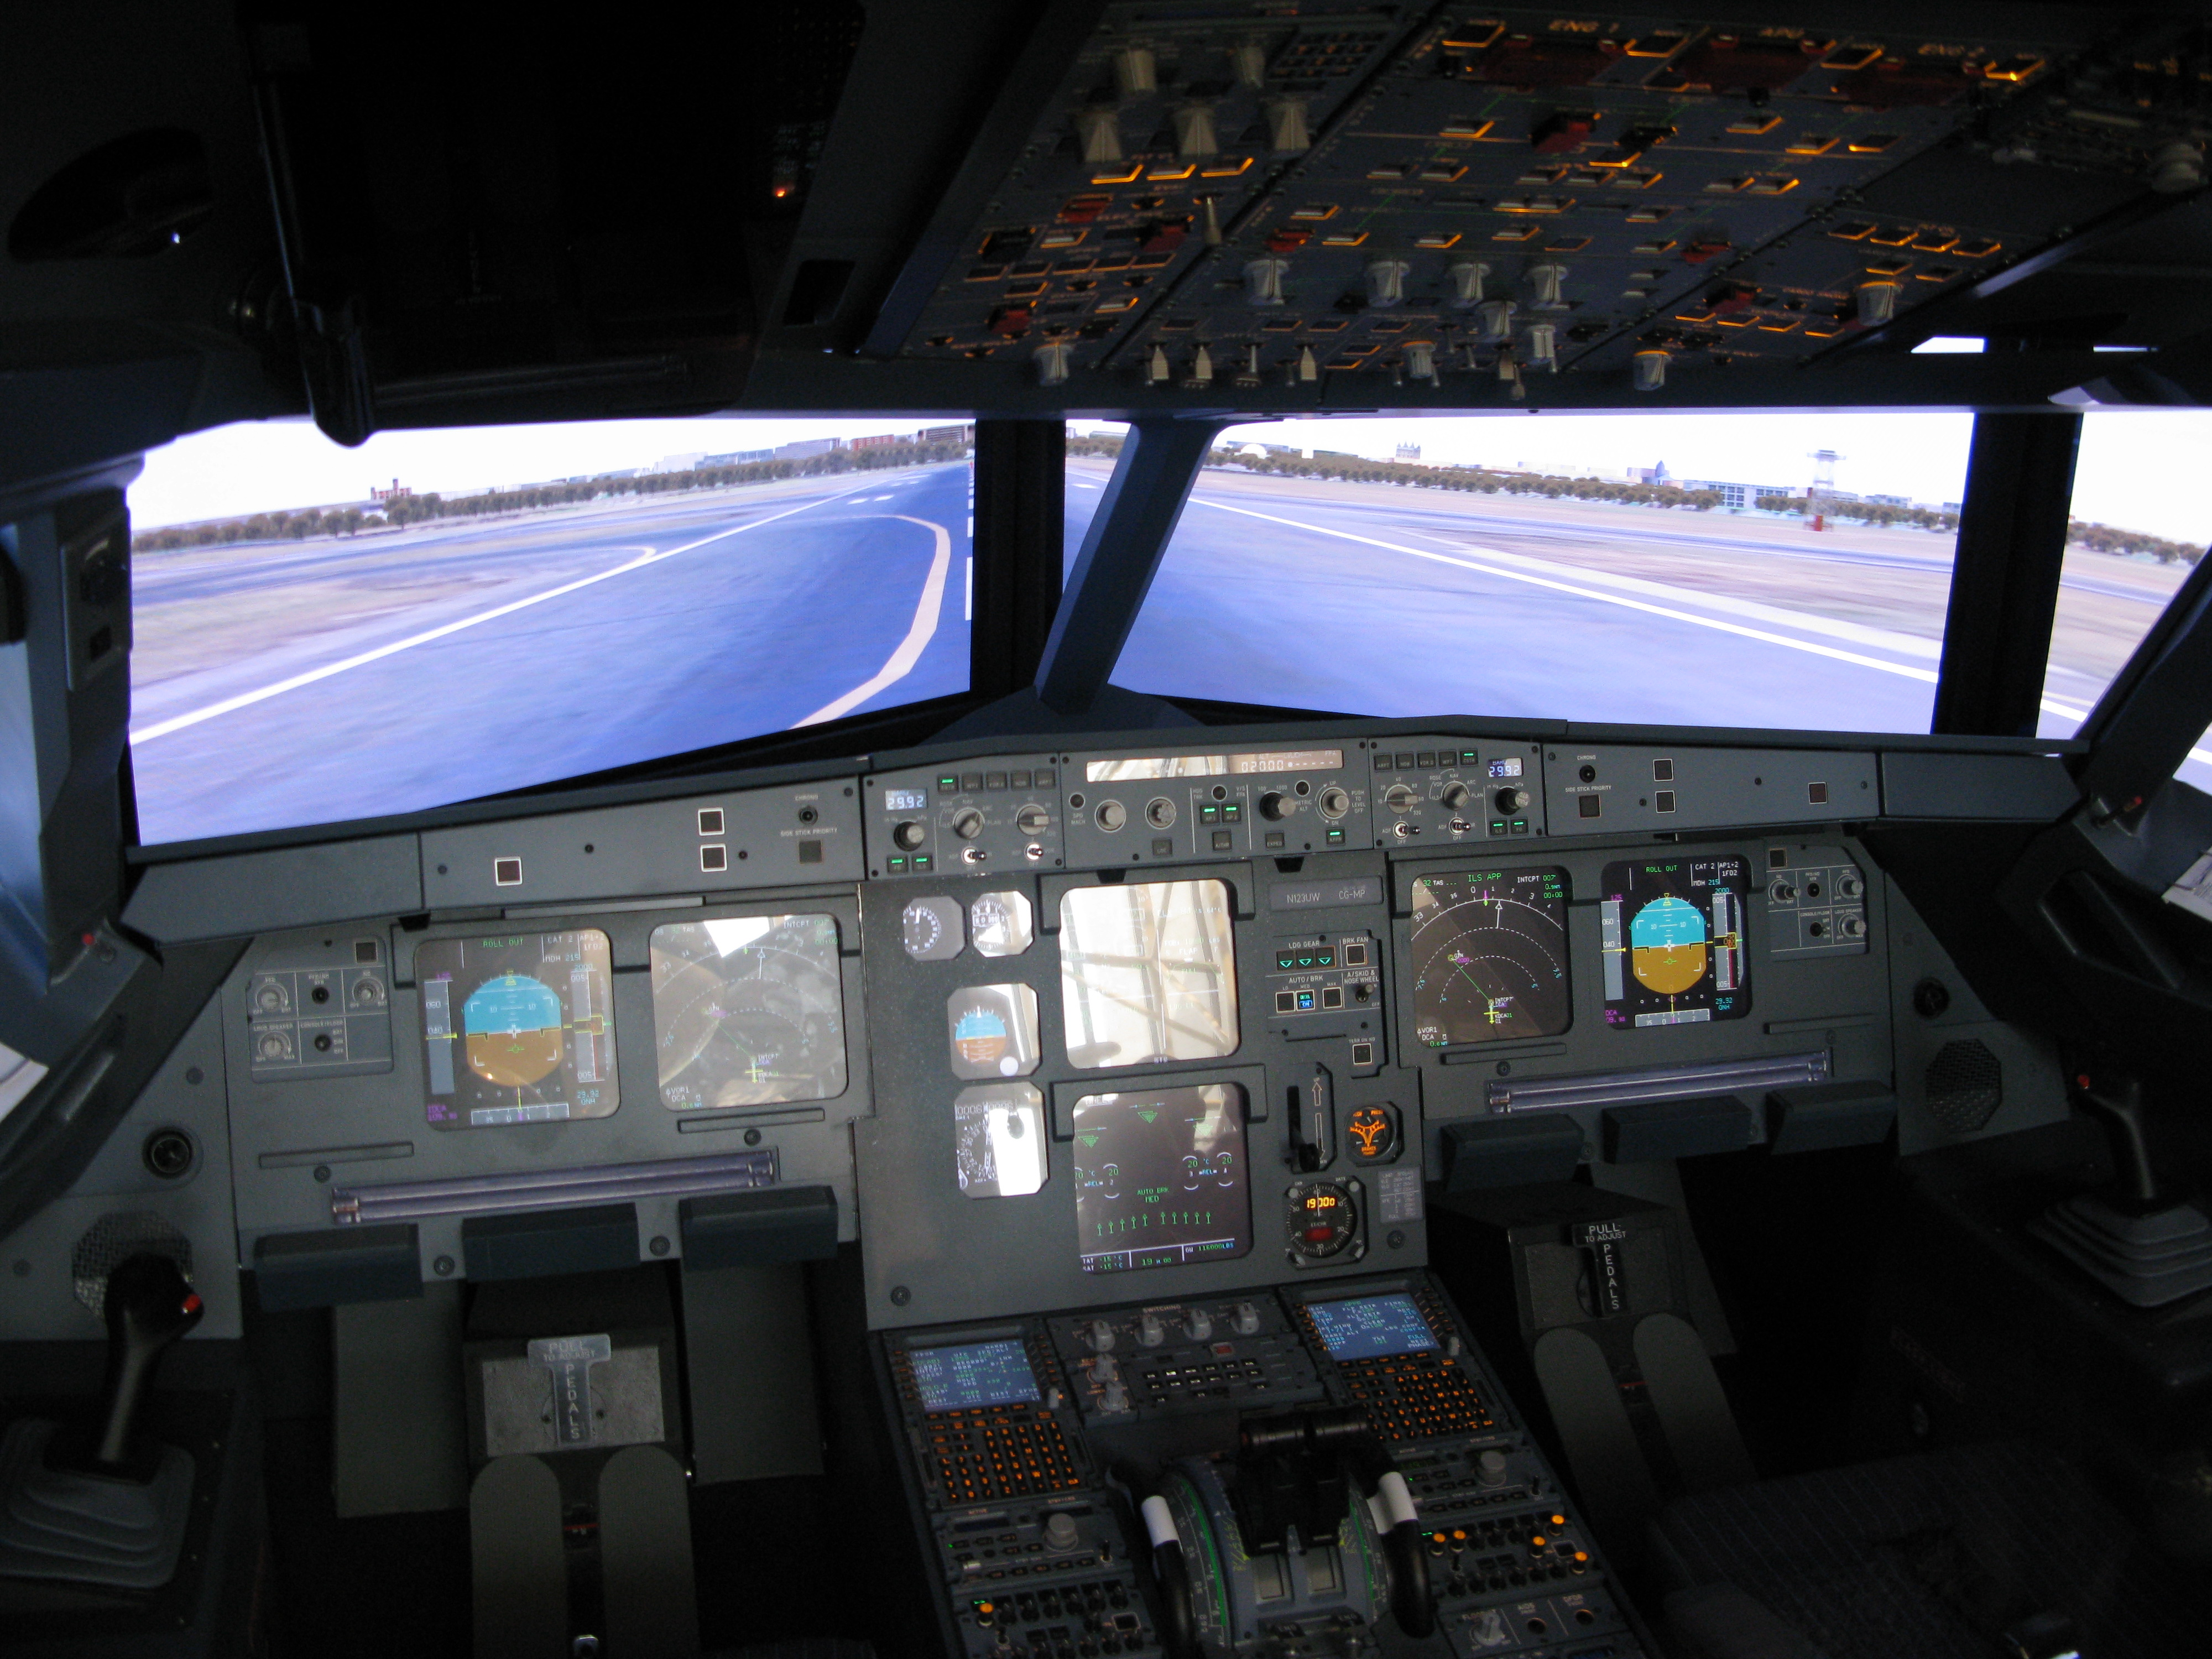 File:Airbus A320 Glass Cockpit jpg - Wikimedia Commons